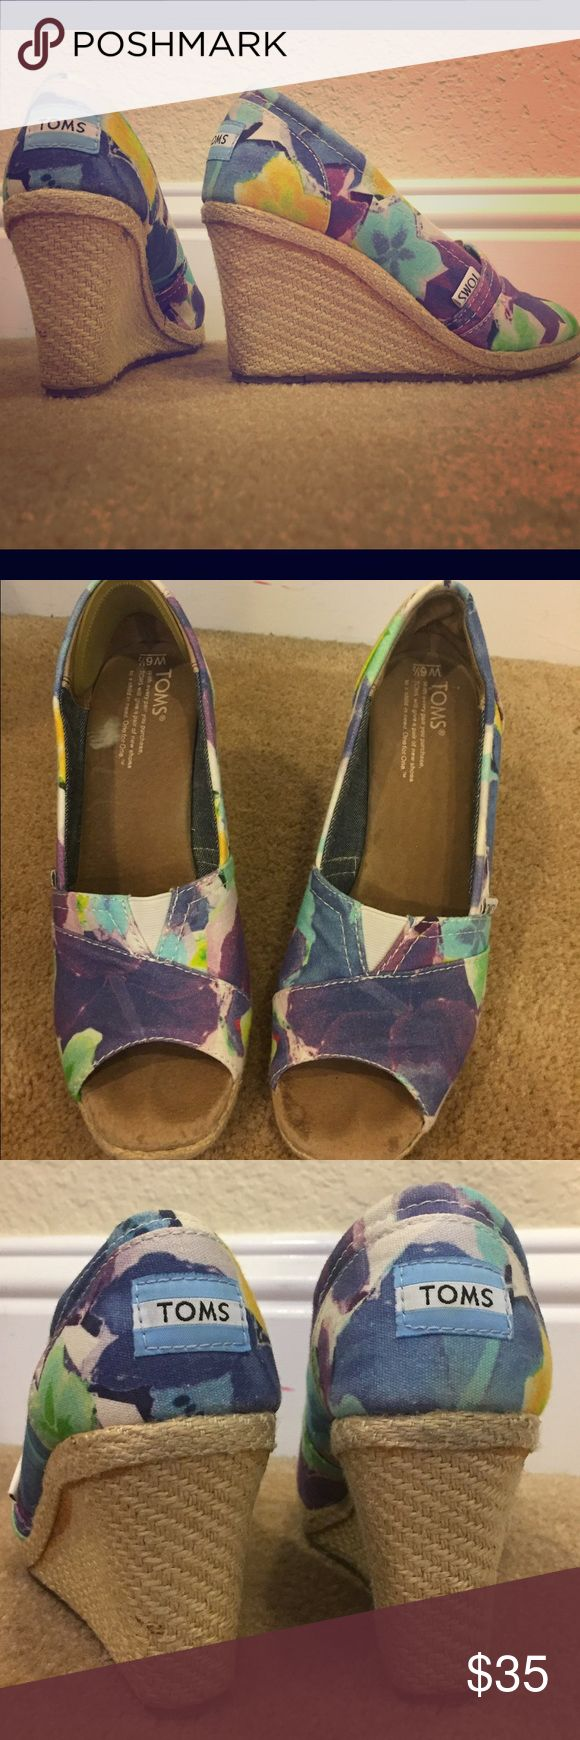 Toms Wedges These comfortable and stylish Tom Wedges in a size 6.5 are the perfect shoe. Worn a few times but still in good condition. TOMS Shoes Wedges